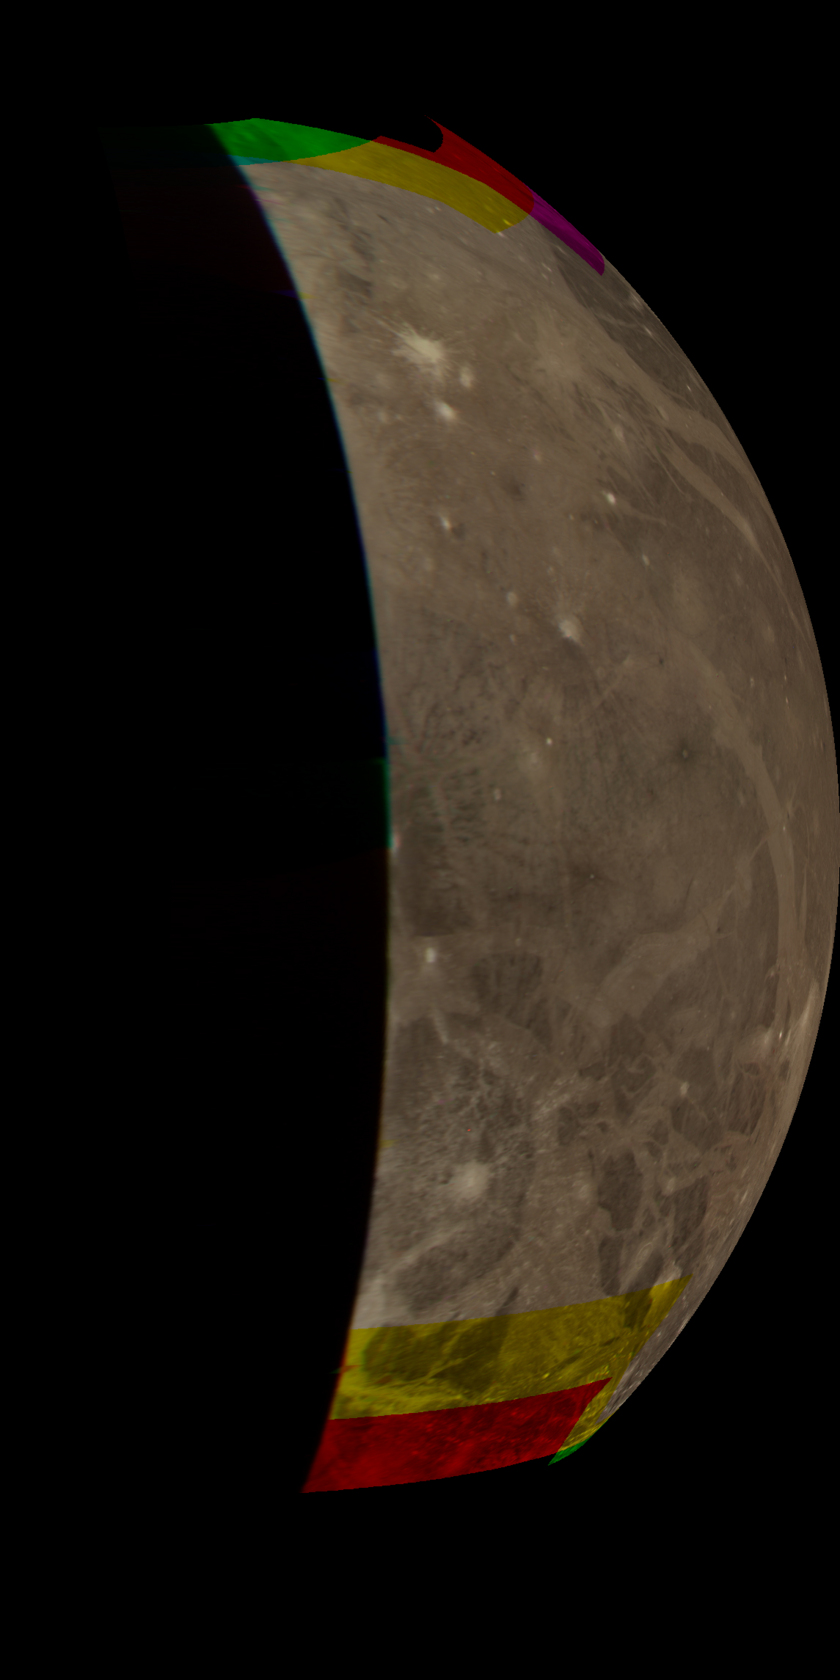 Ganymede's trailing hemisphere from Voyager 2